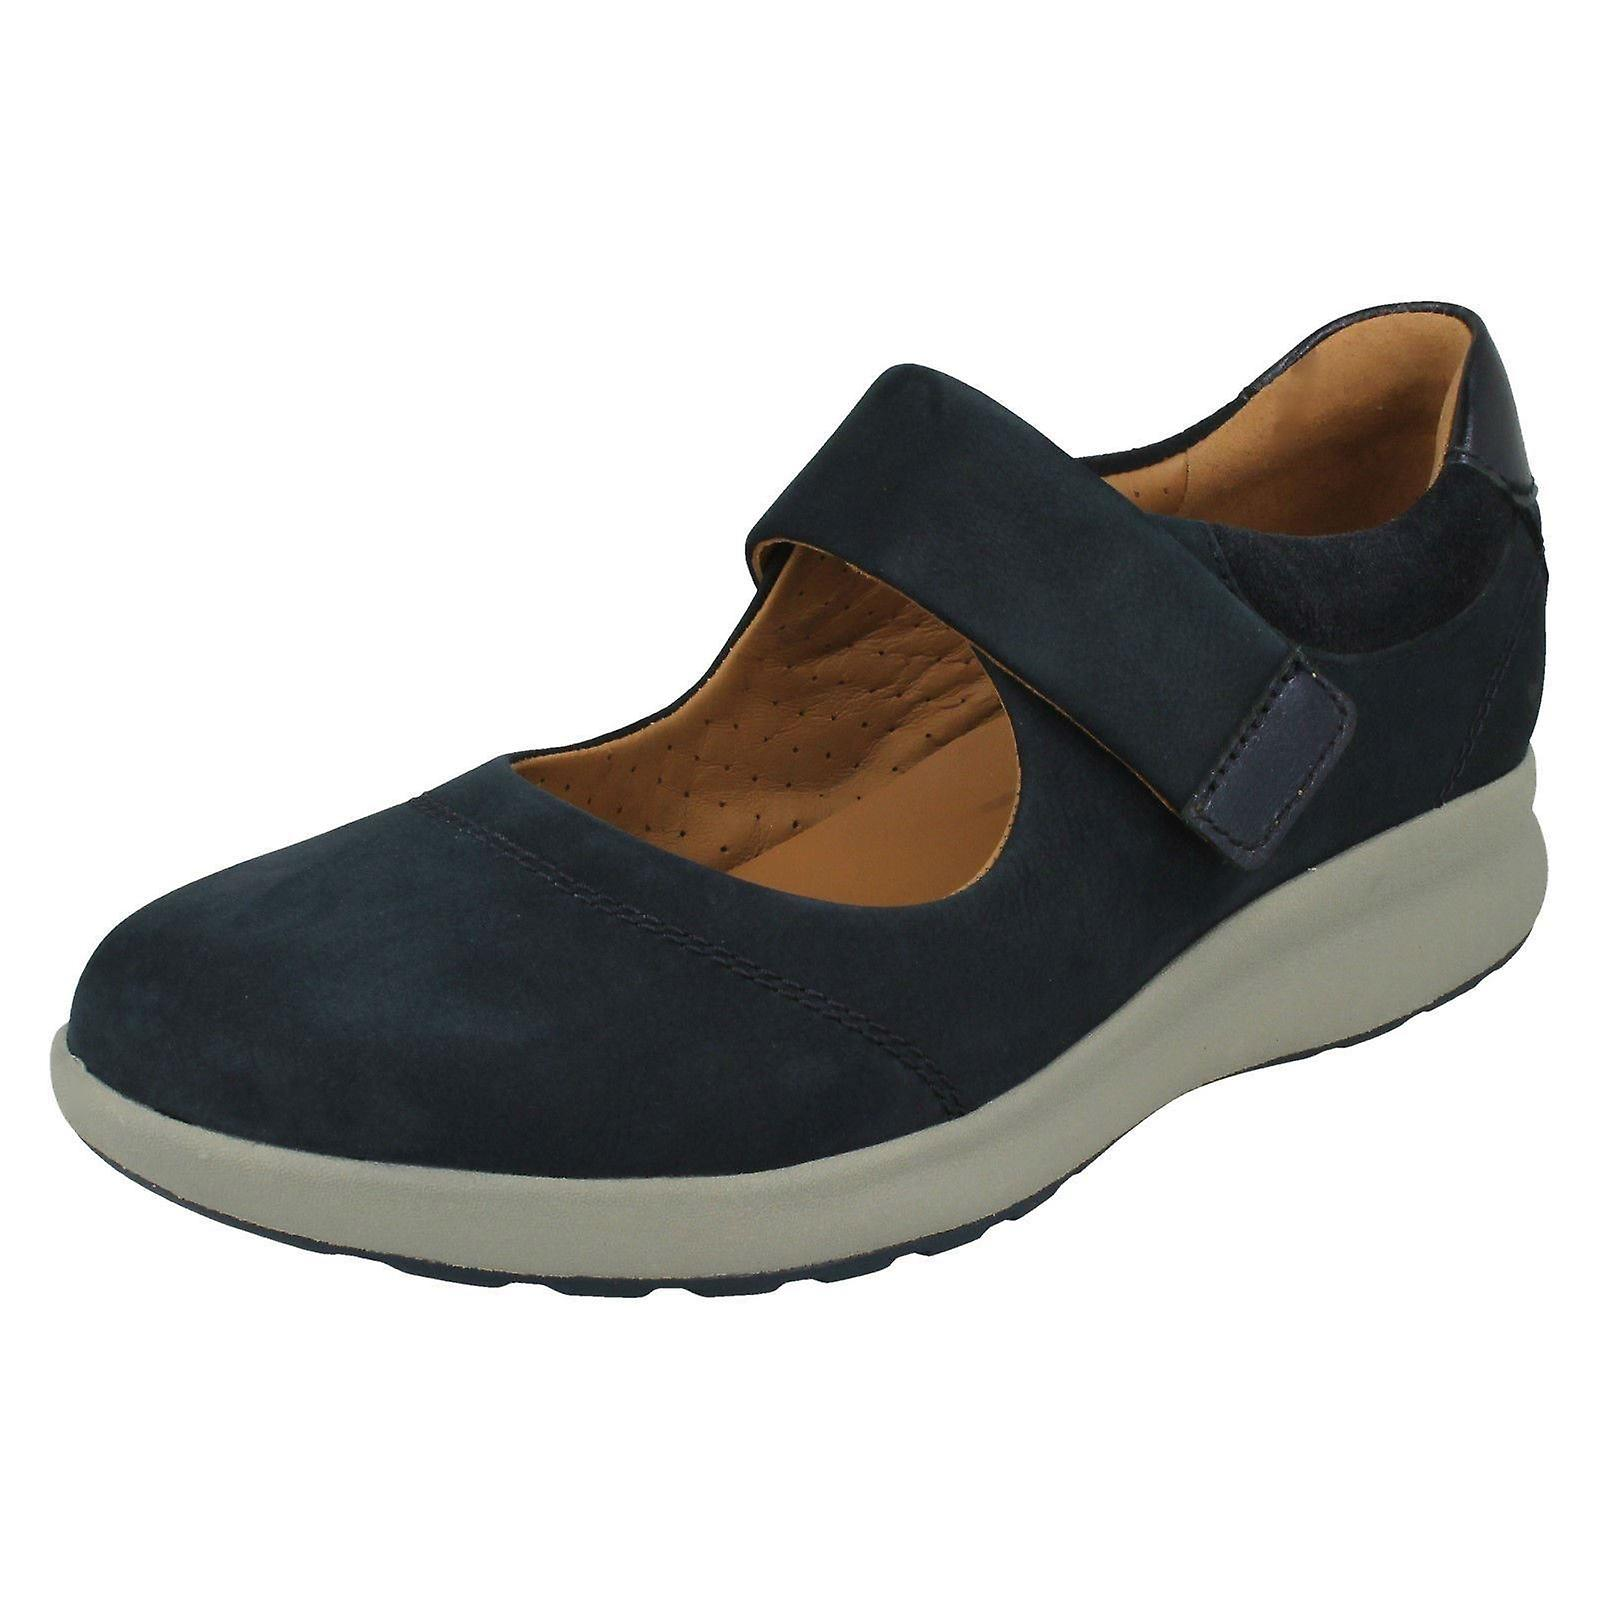 Ladies Clarks Casual Flat Mary Jane chaussures Un Adorn Strap